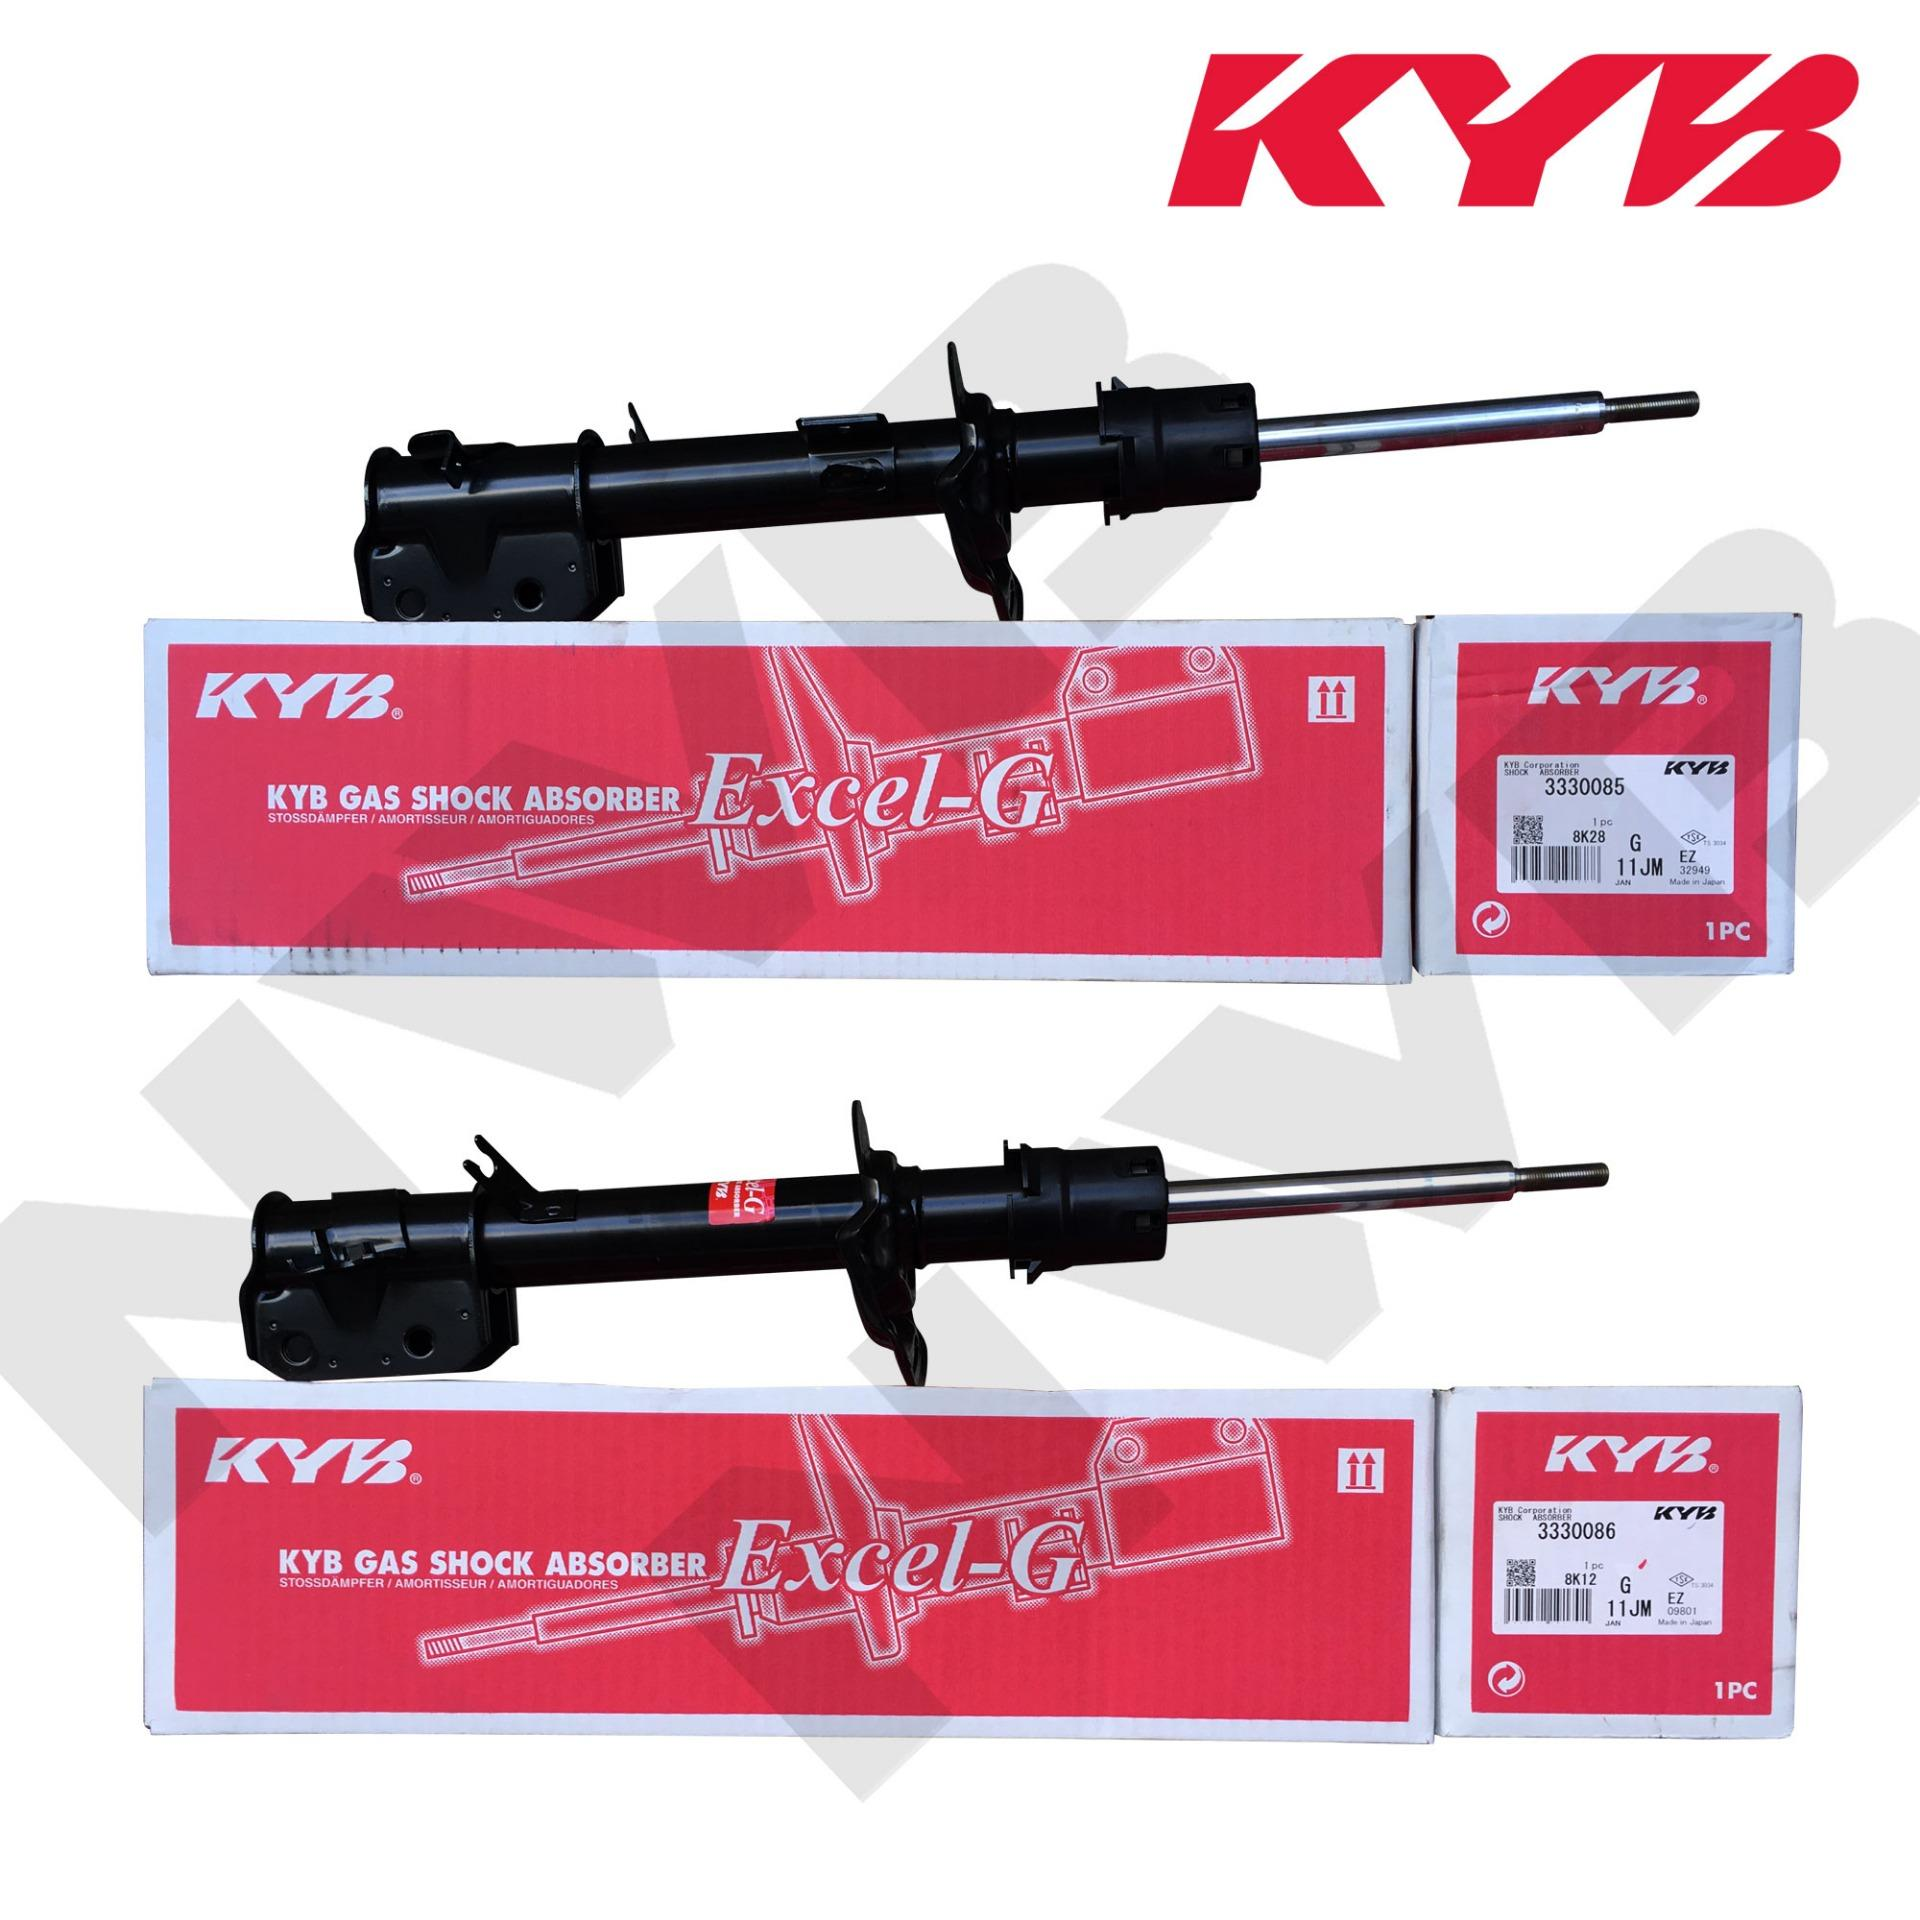 KYB Gas Strut Assembly Front for Suzuki Ertiga 2014-2017 Set of 2  (KYB-3330085/3330086)